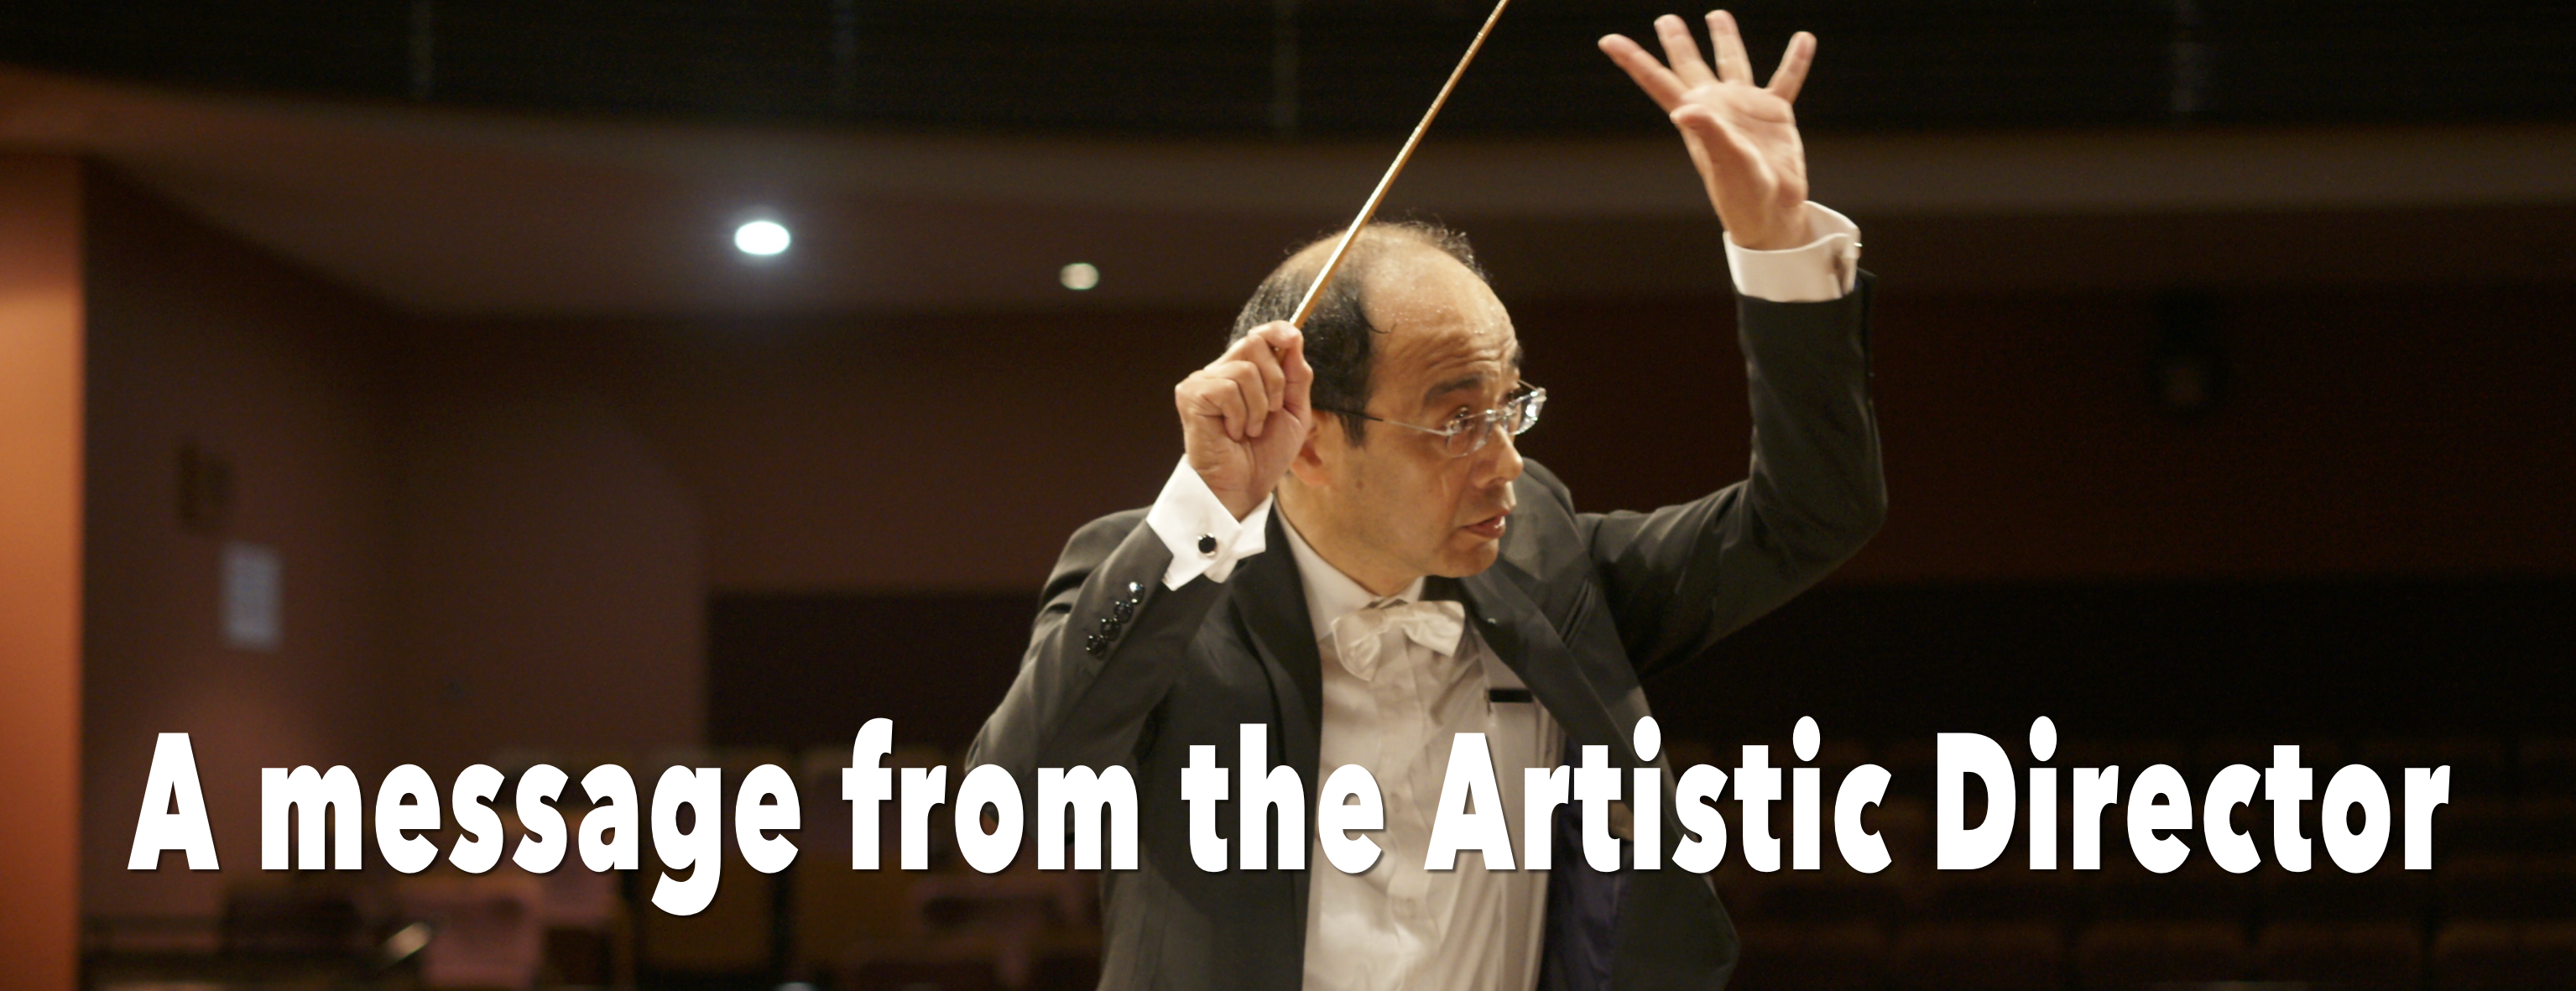 A Message from the Artistic Director